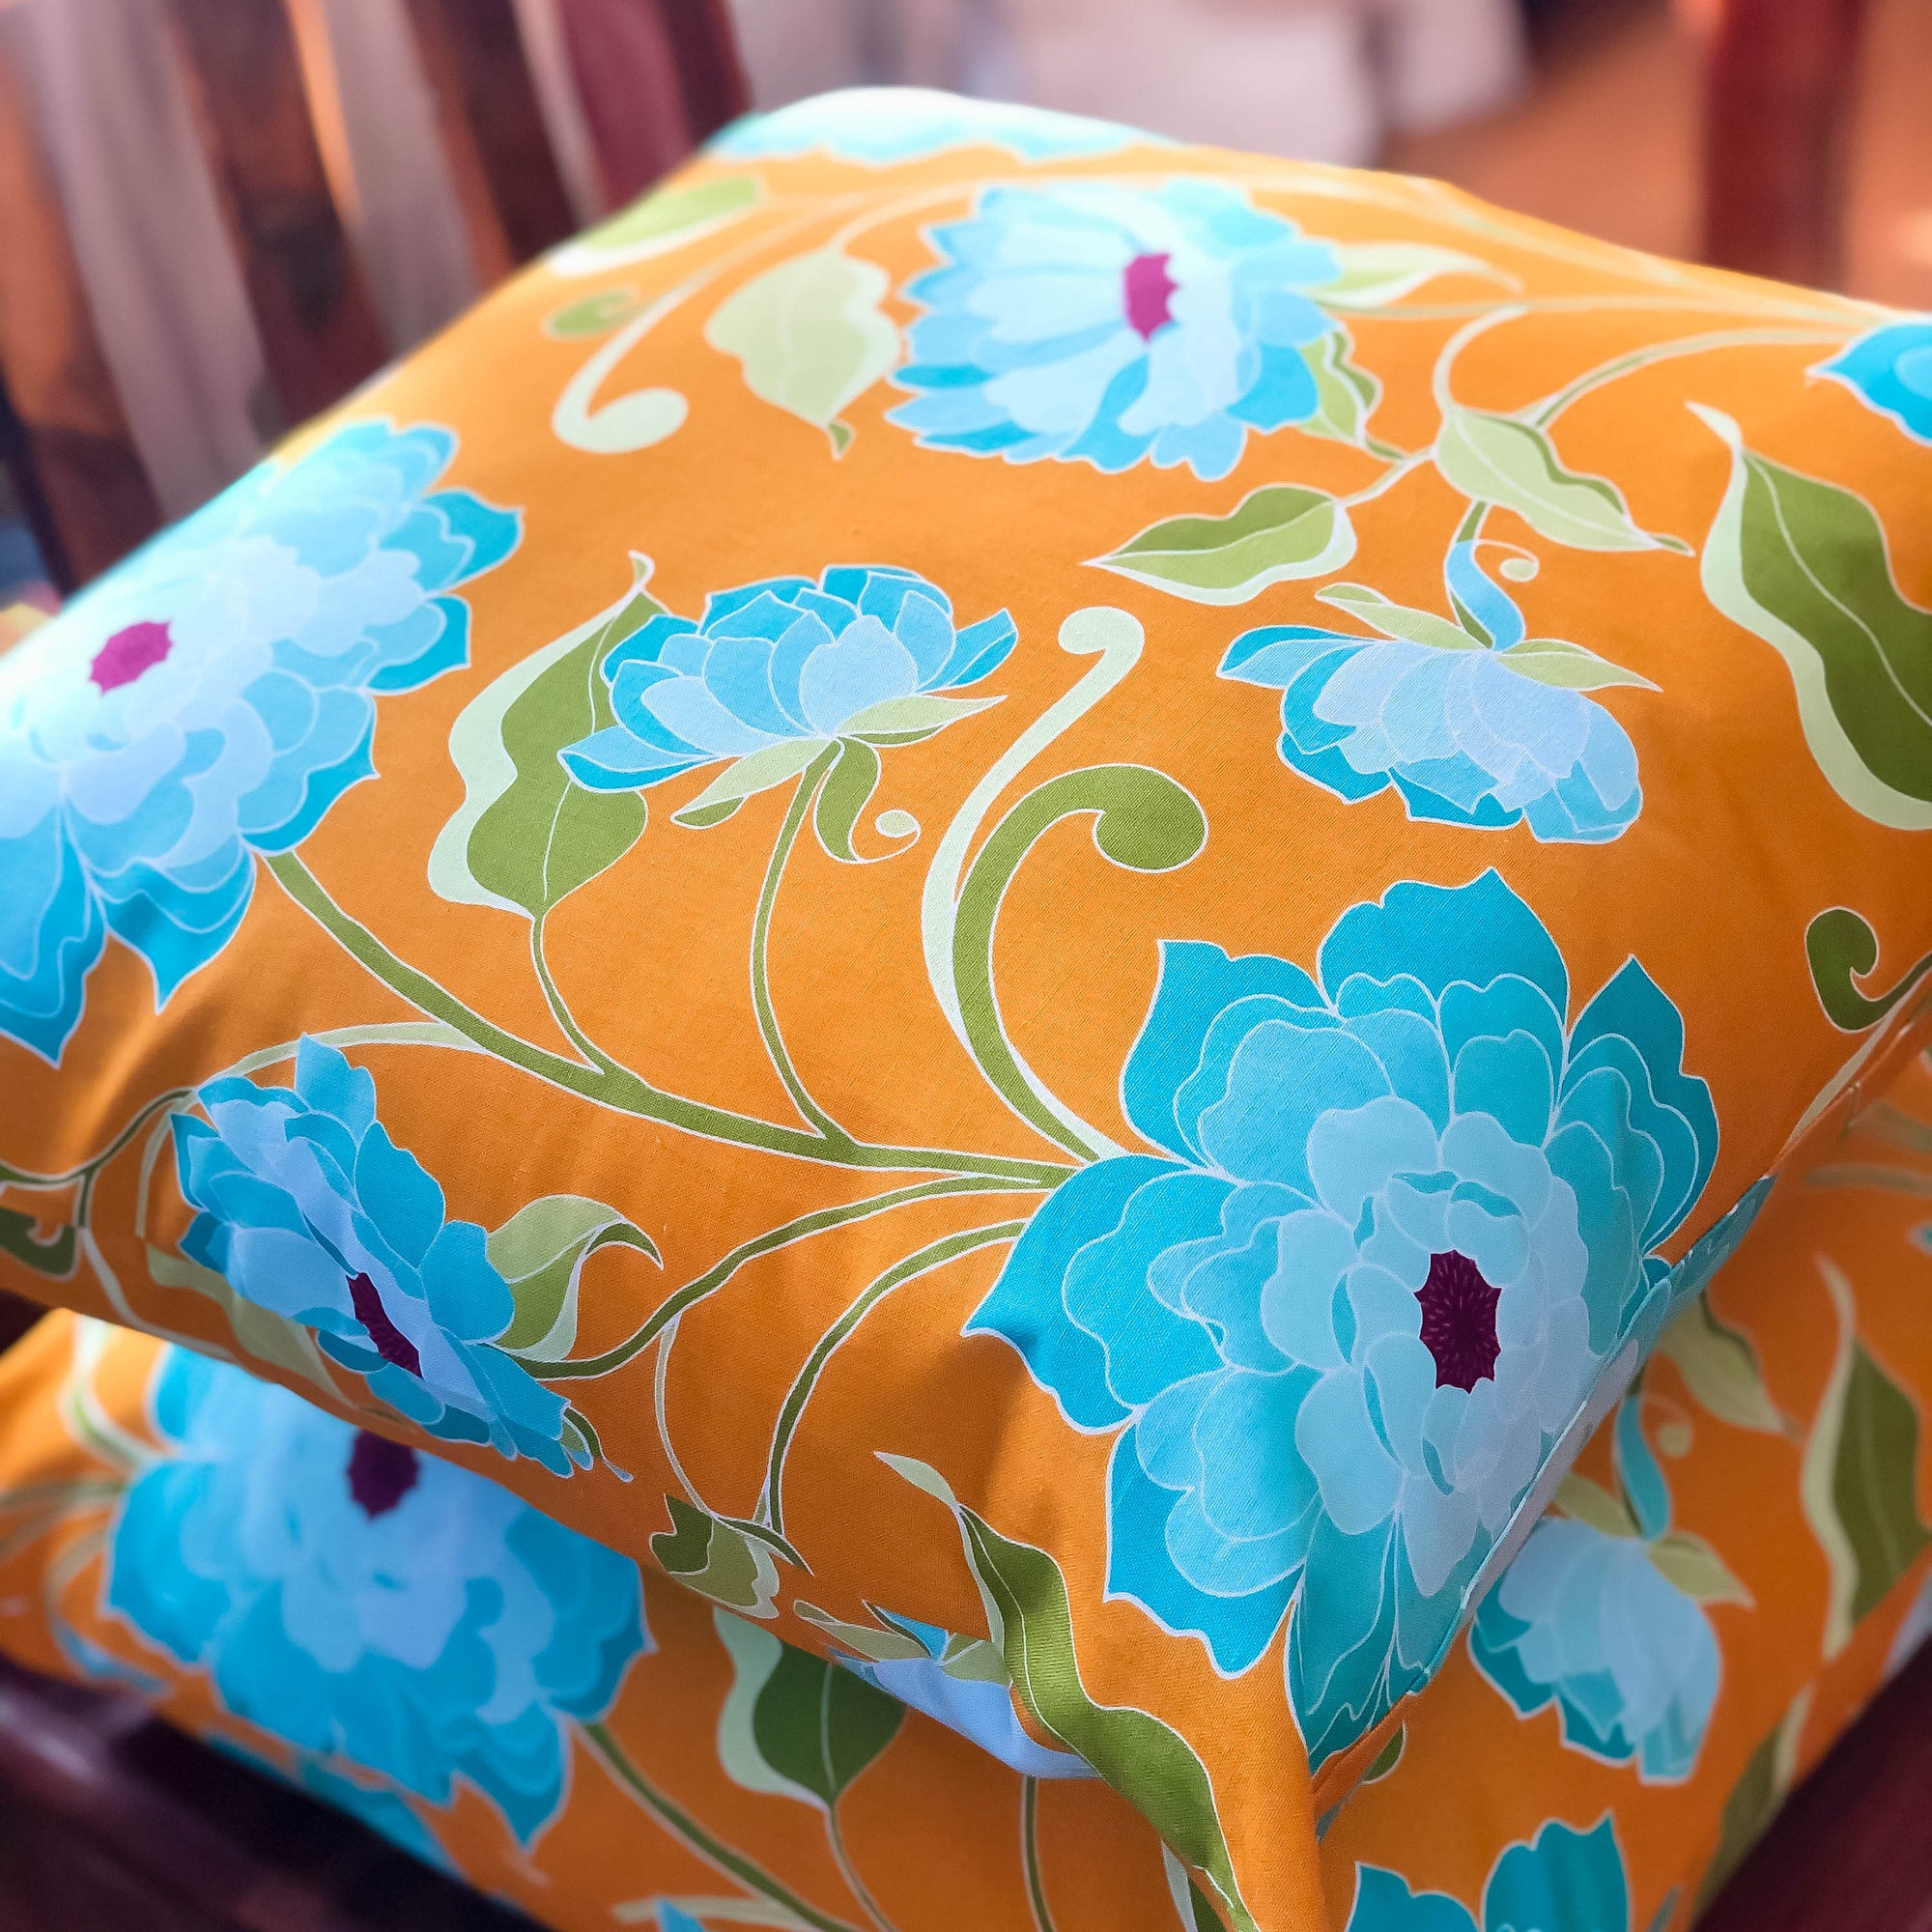 Handmade cushion - turquoise roses on saffron yellow cushion -